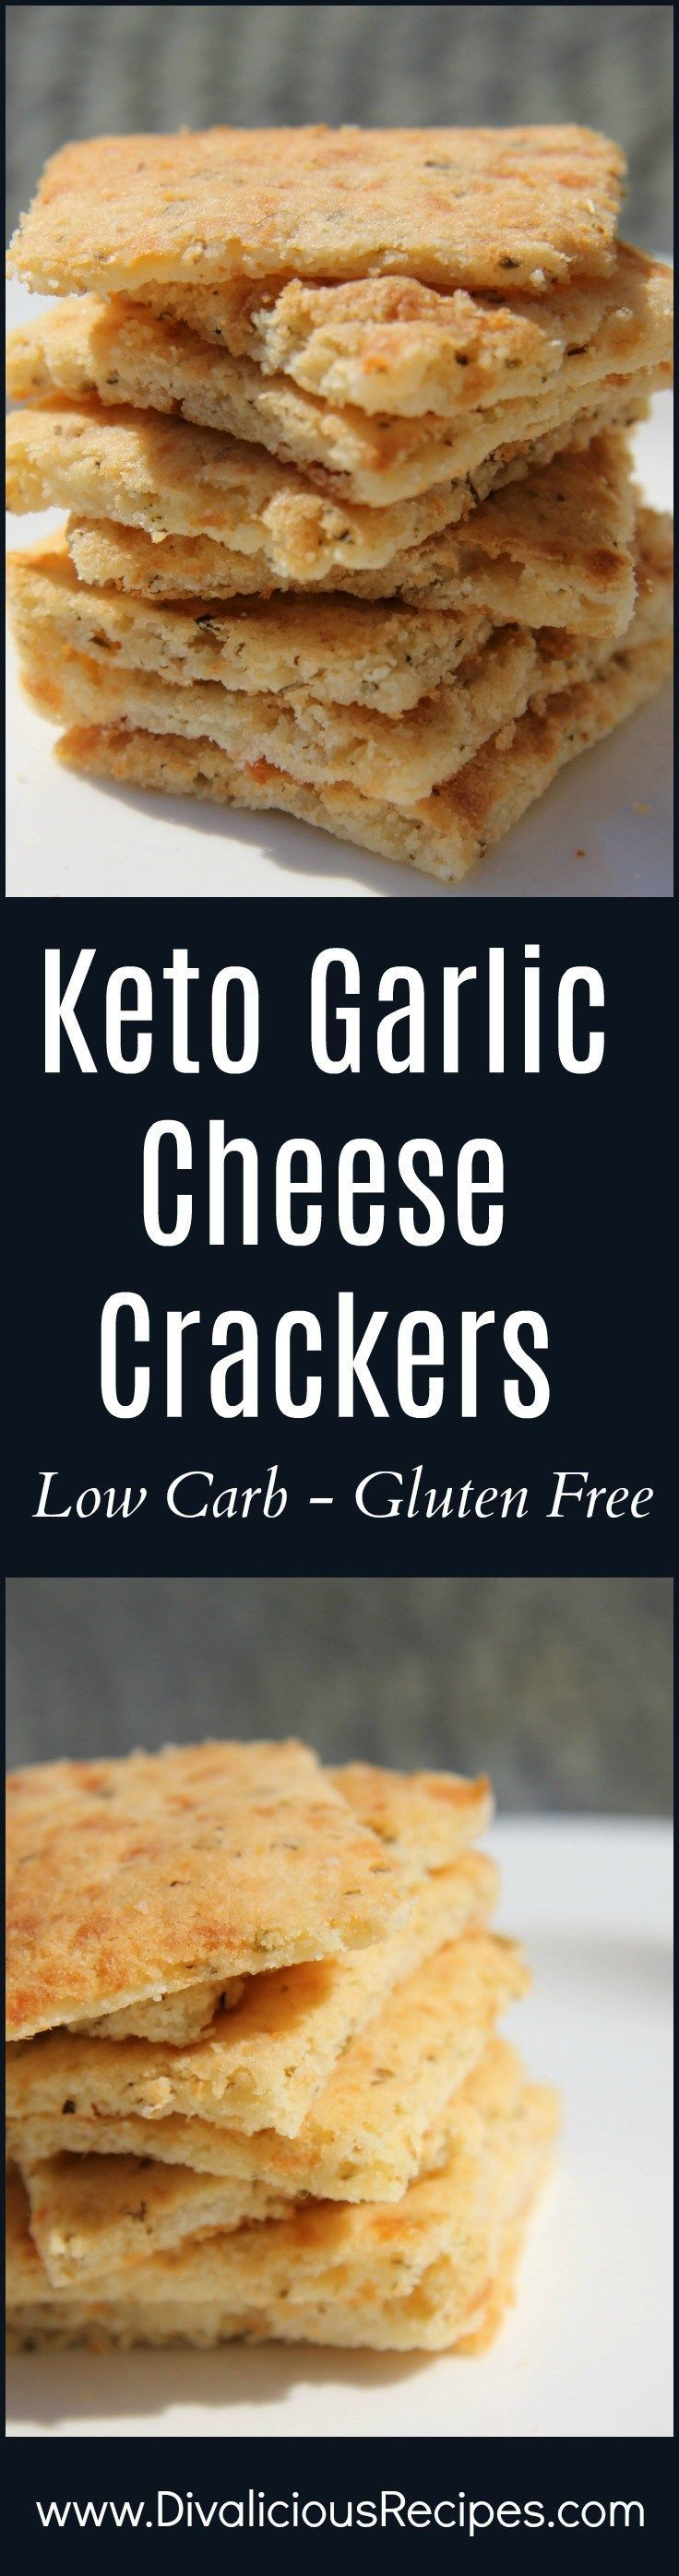 An easy low carb and gluten free cracker made with coconut flour and cheese.